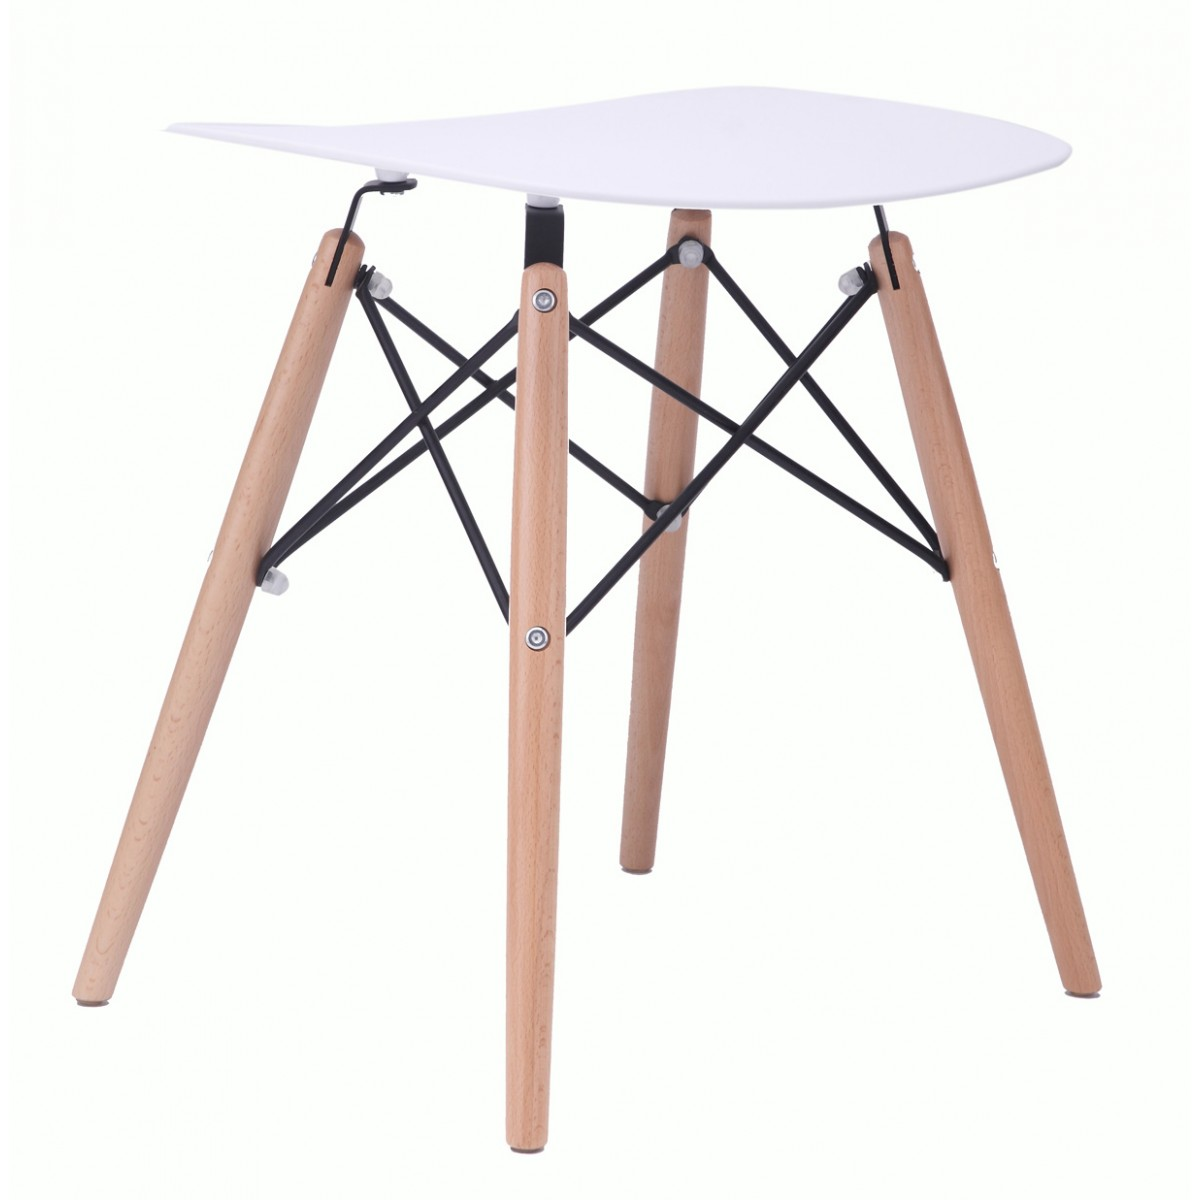 18 Inch Stool Lavelle 18 Inch Wooden Stool Wooden